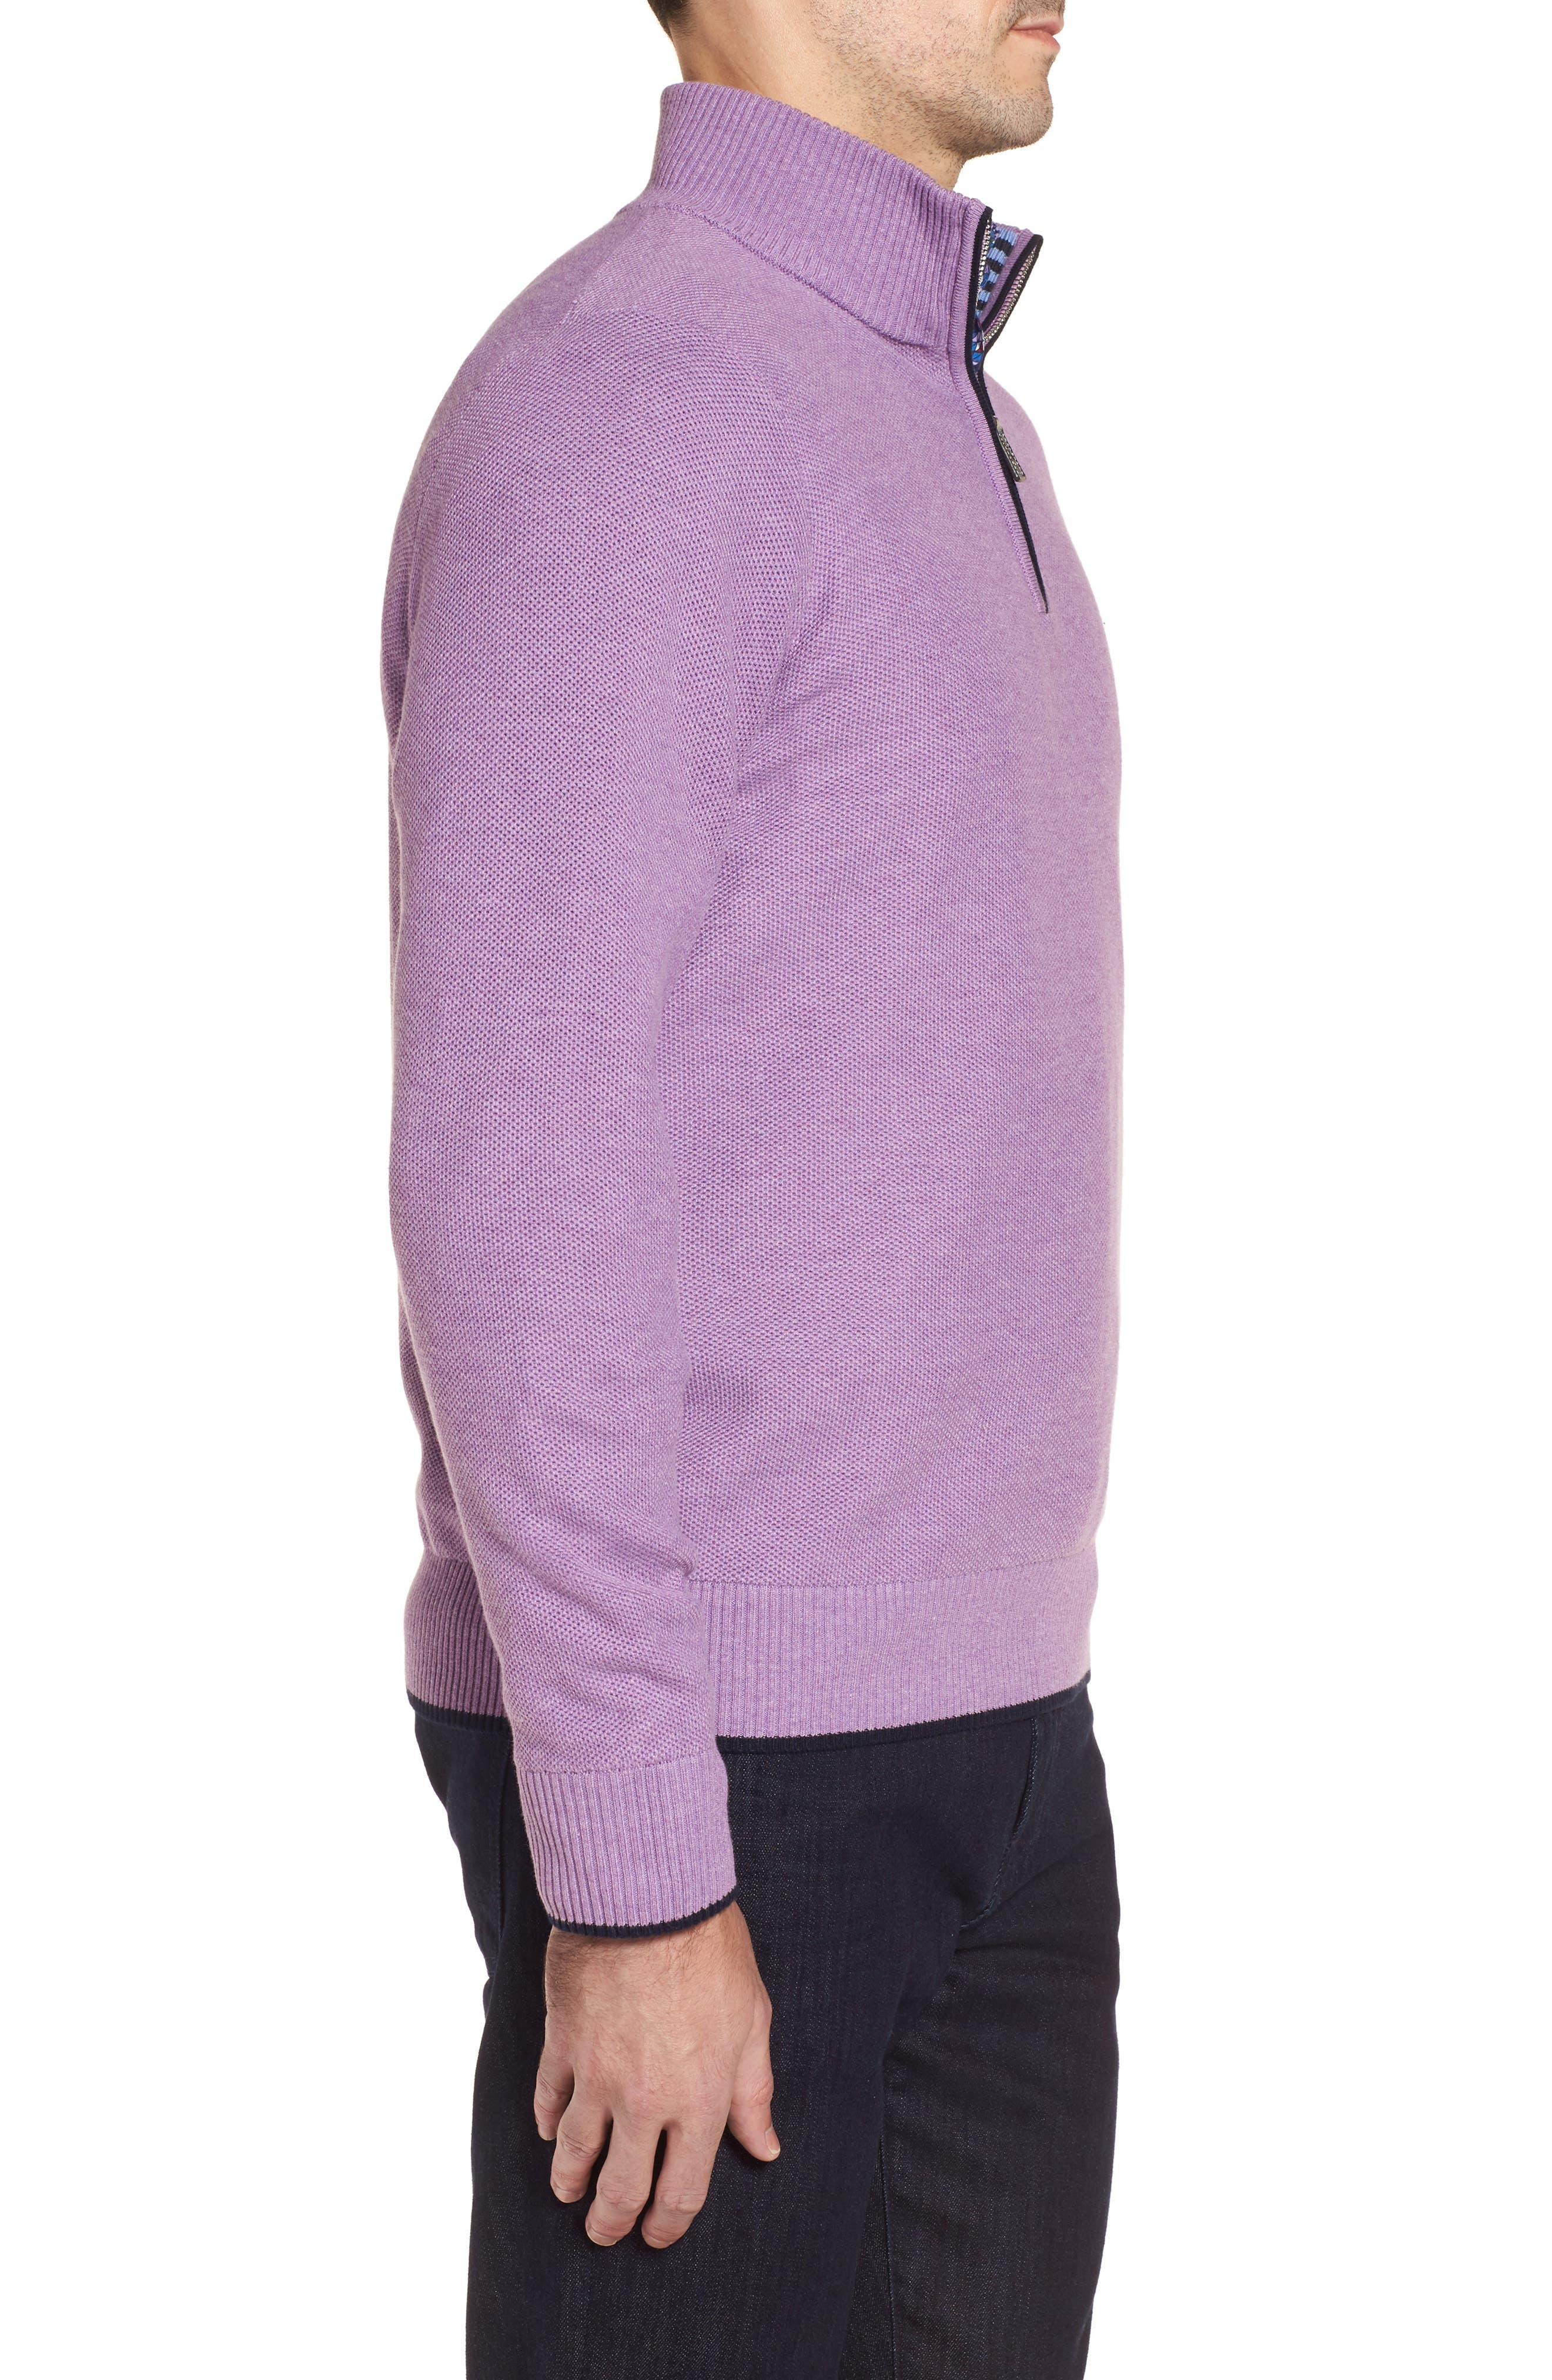 Alternate Image 3  - TailorByrd Ossun Tipped Quarter Zip Sweater